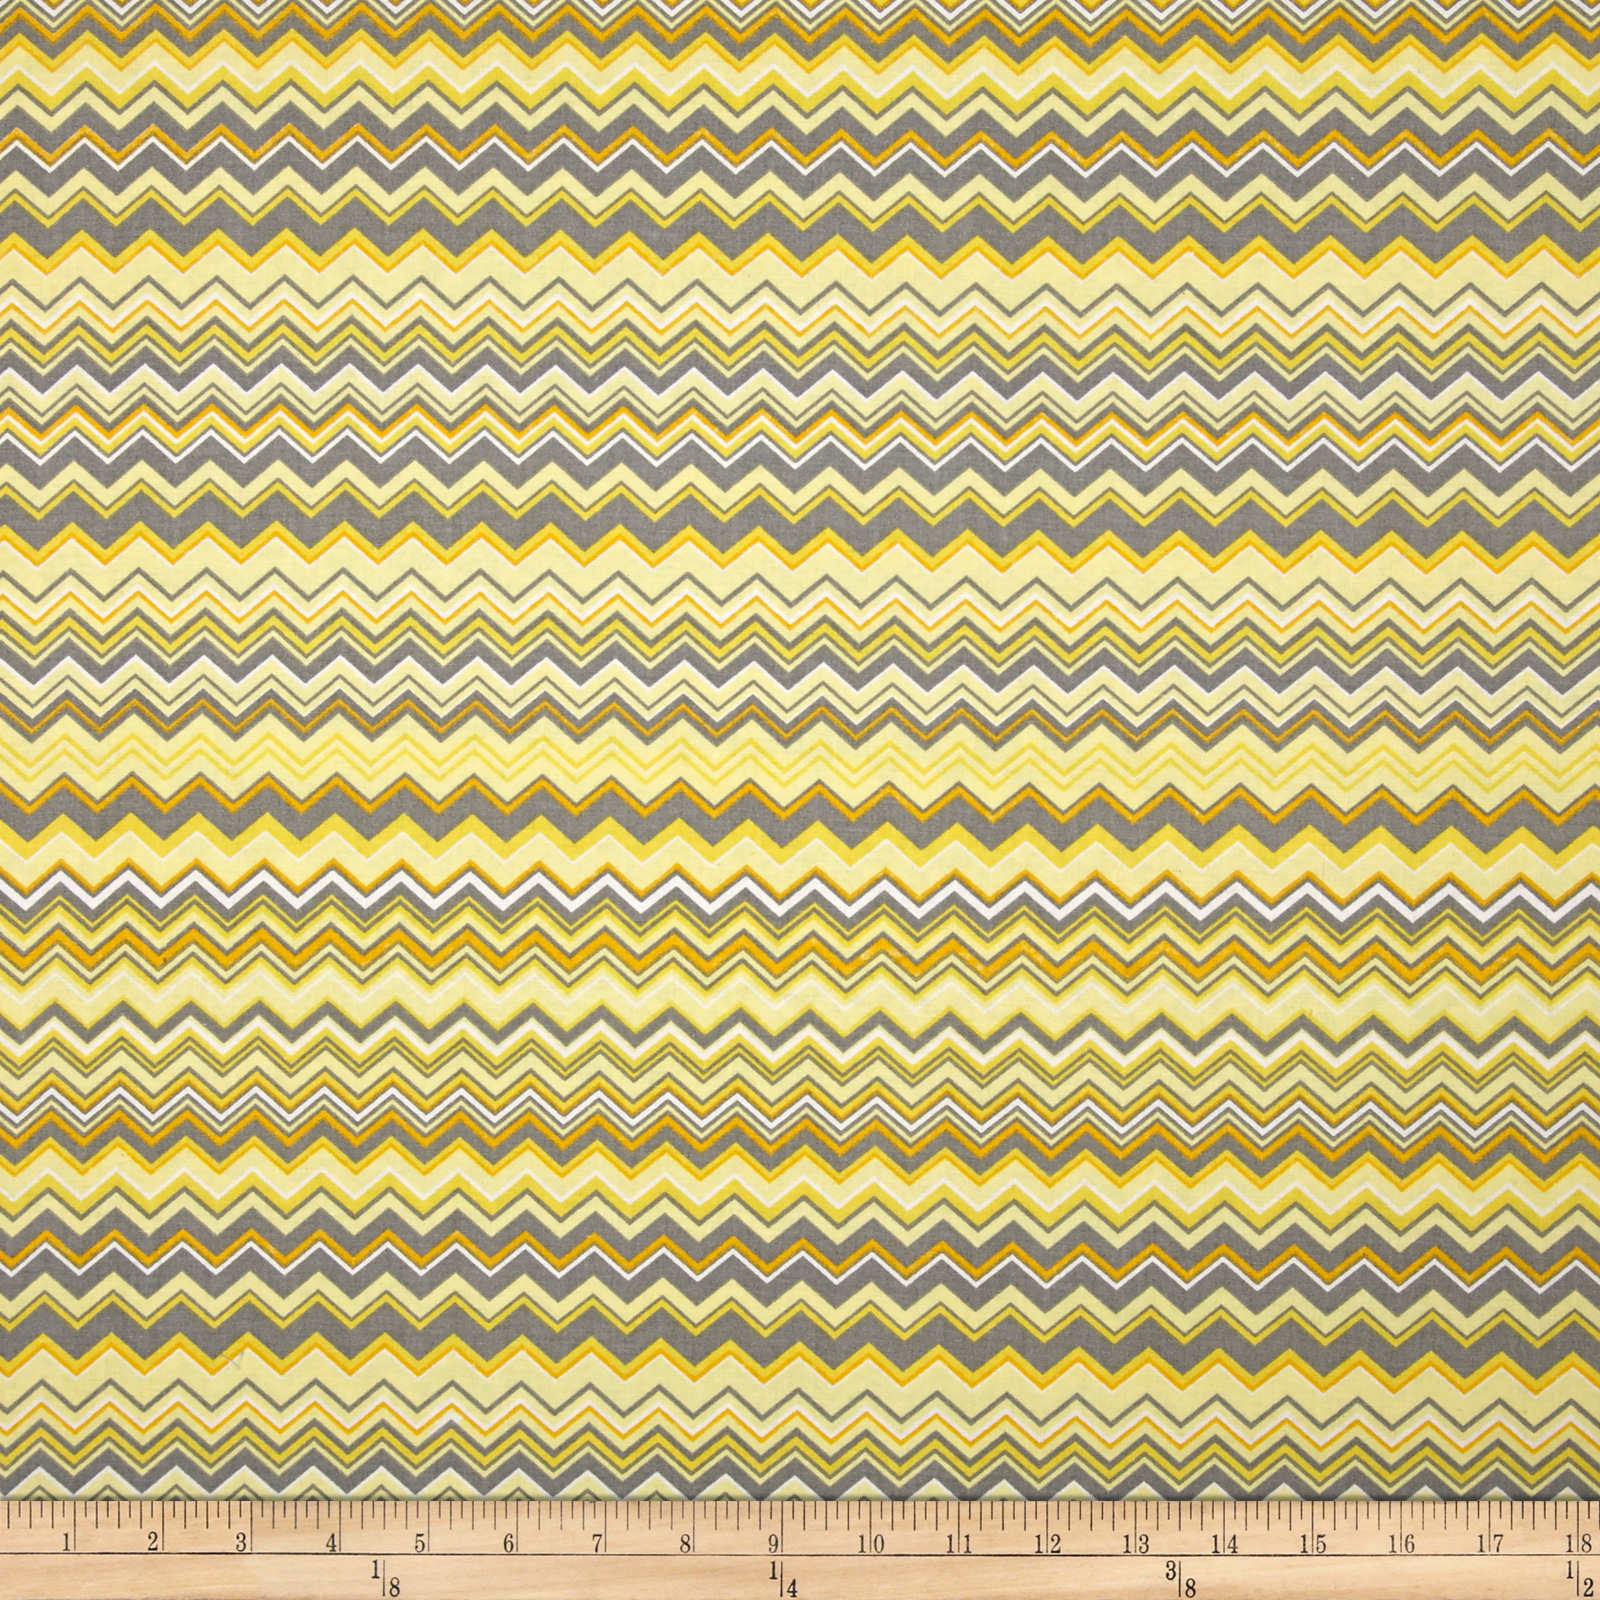 A.E. Nathan Chevron Yellow/Grey/White Fabric